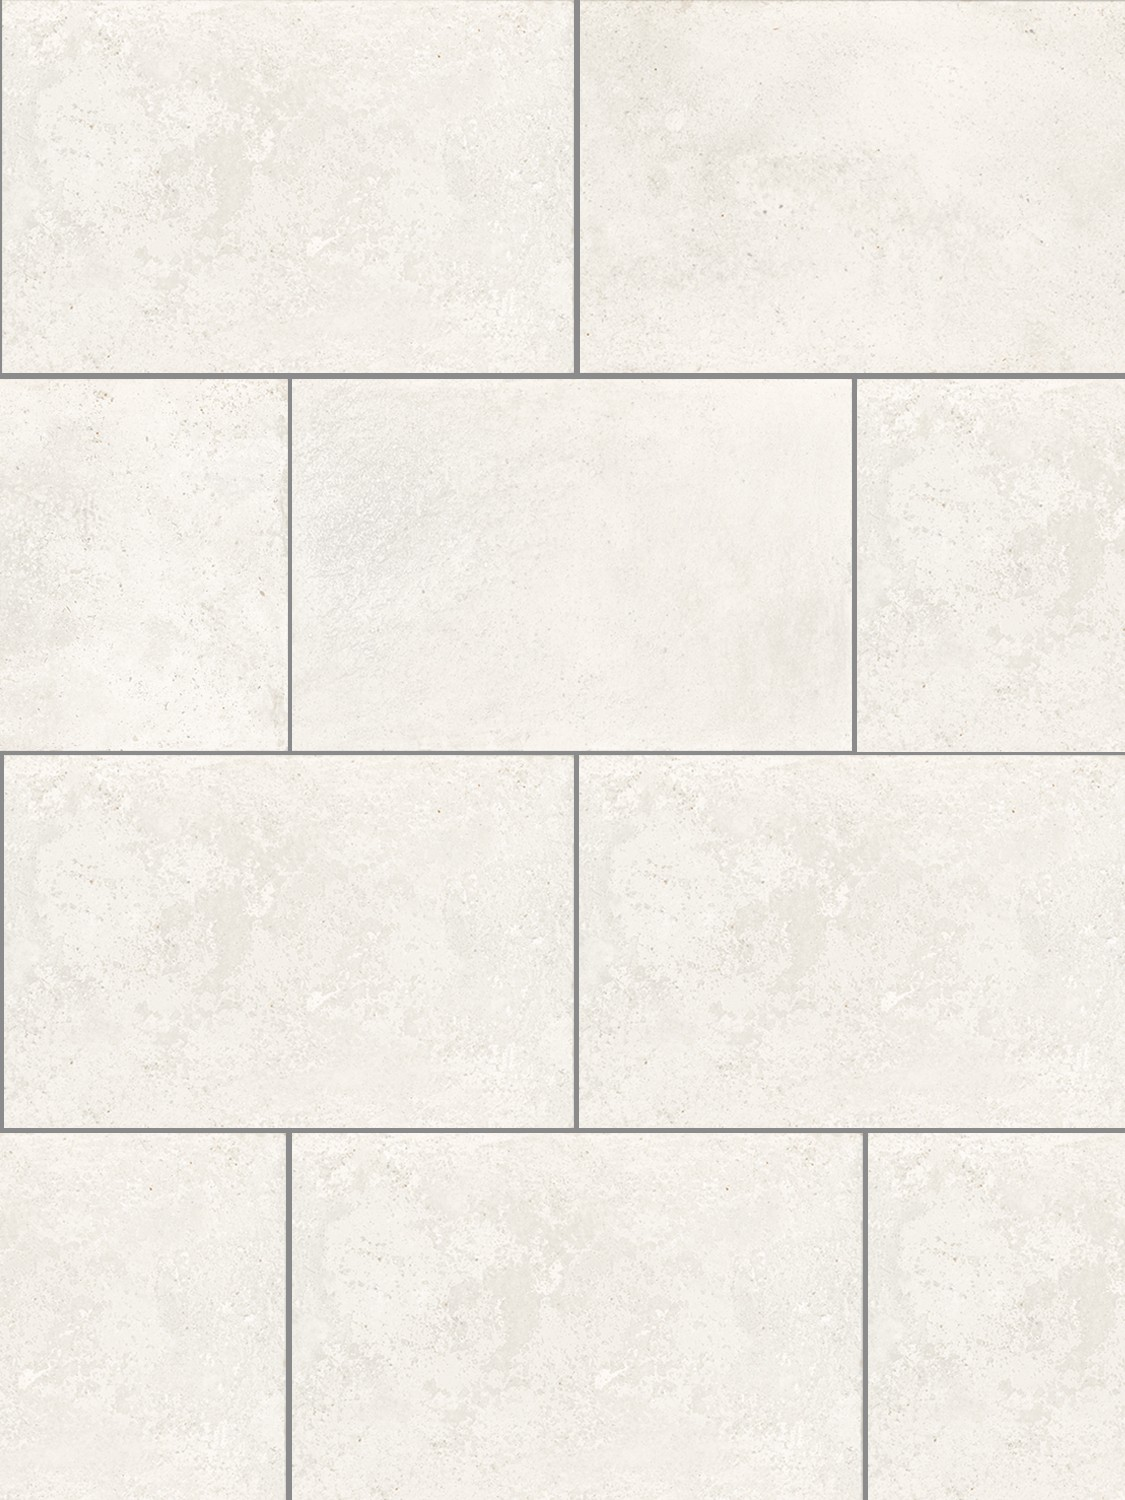 Luna Ivory Virtue Vitrified Porcelain Paving Slabs - 900x600 Pack